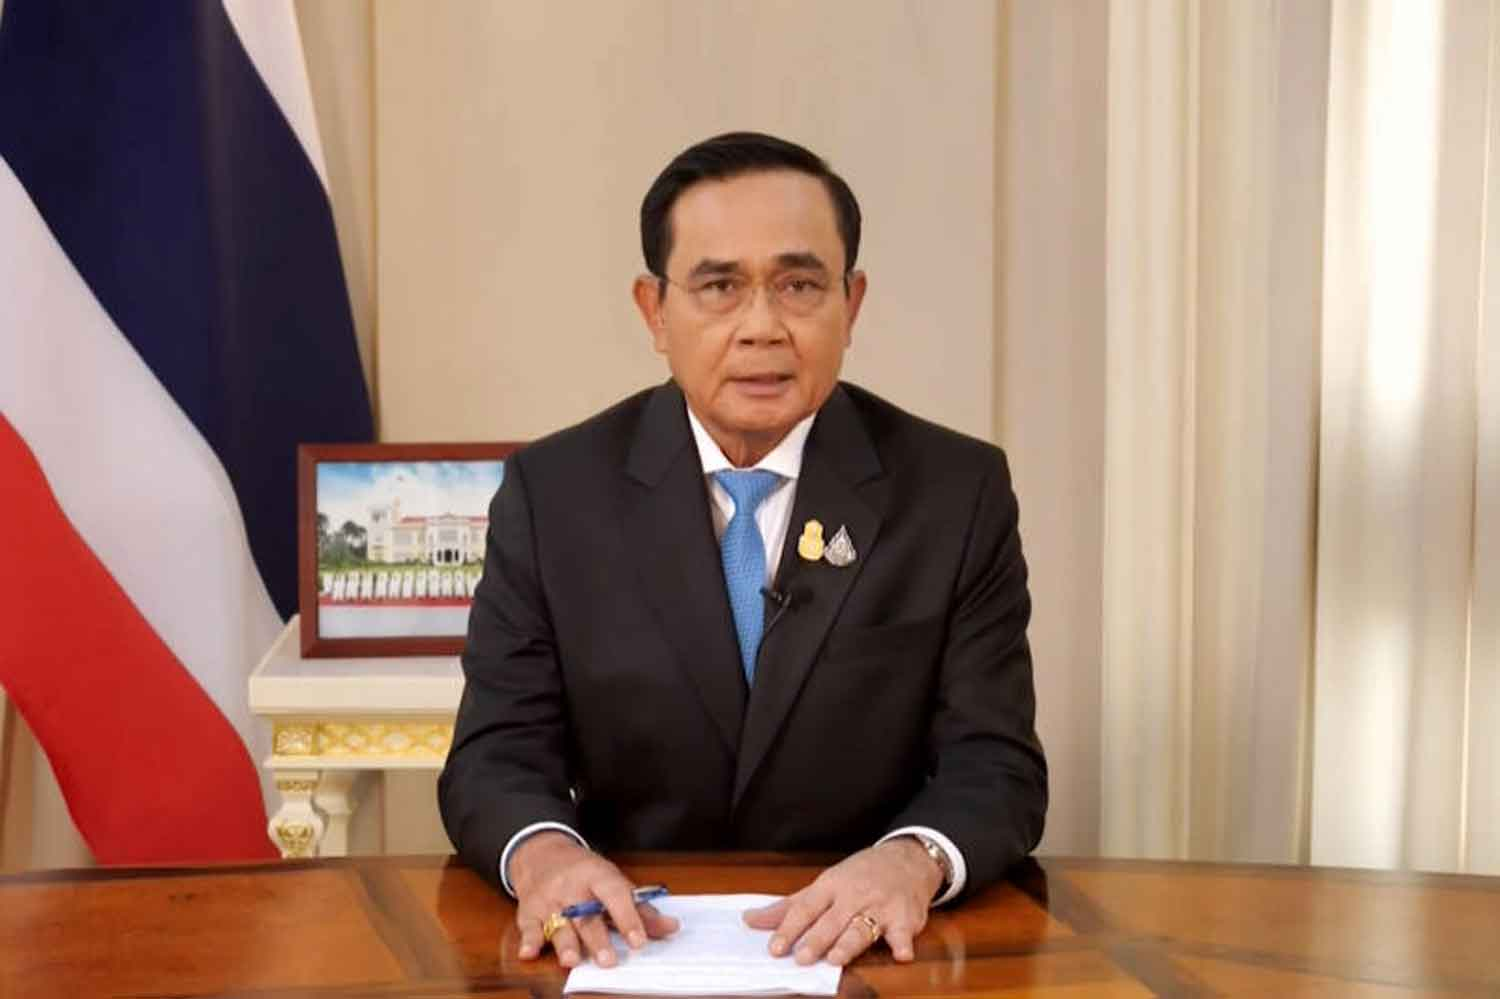 Prime Minister Prayut Chan-o-cha delivers a televised speech urging national unity and outlining various tasks the government will pursue including economic solutions on Aug 13. (TV Pool photo)